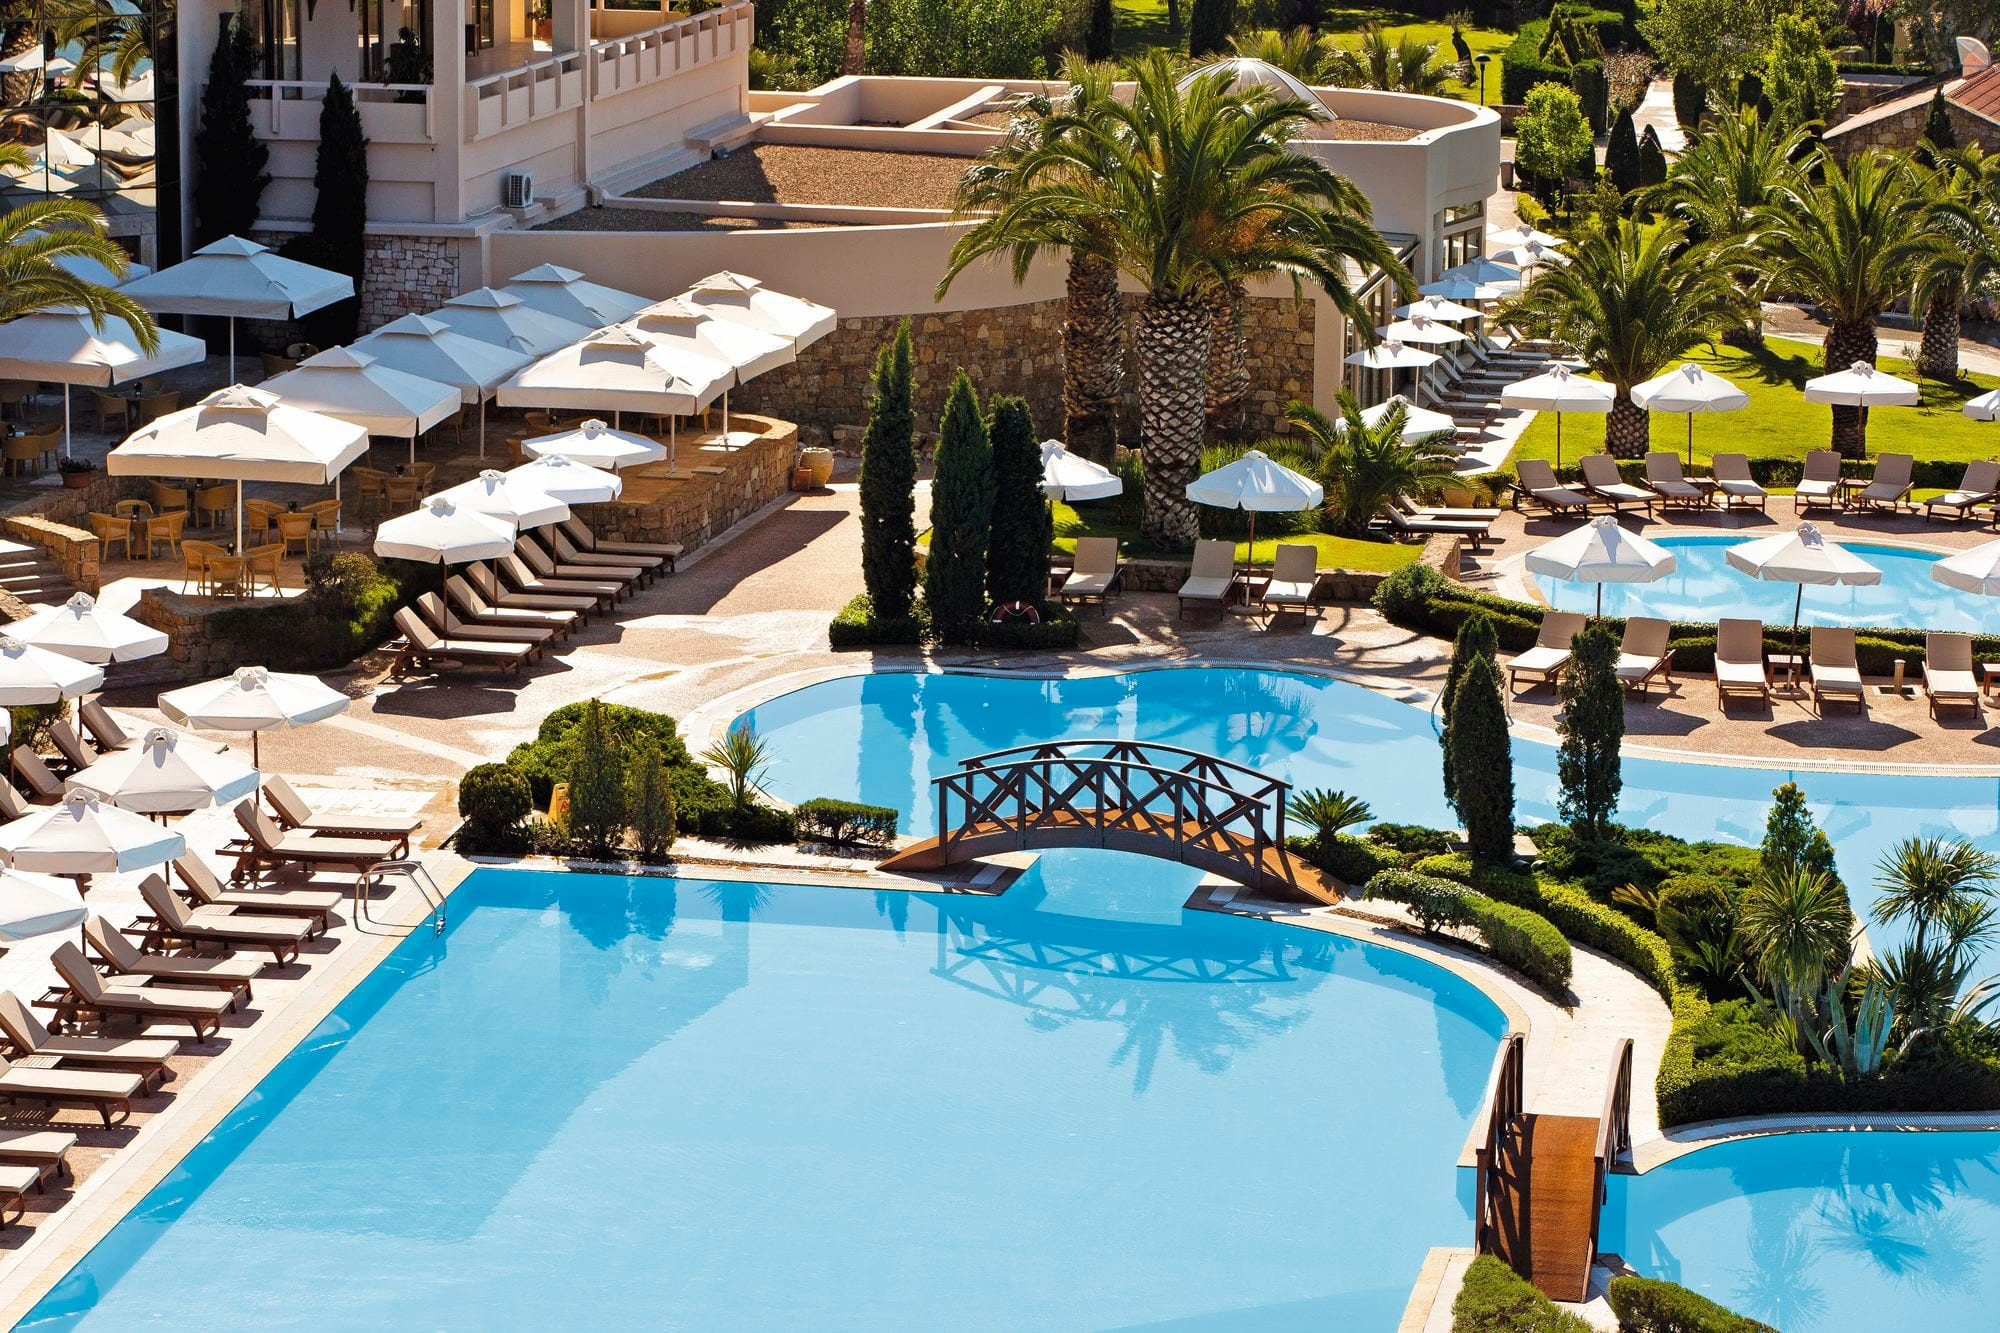 Sani resort holidays